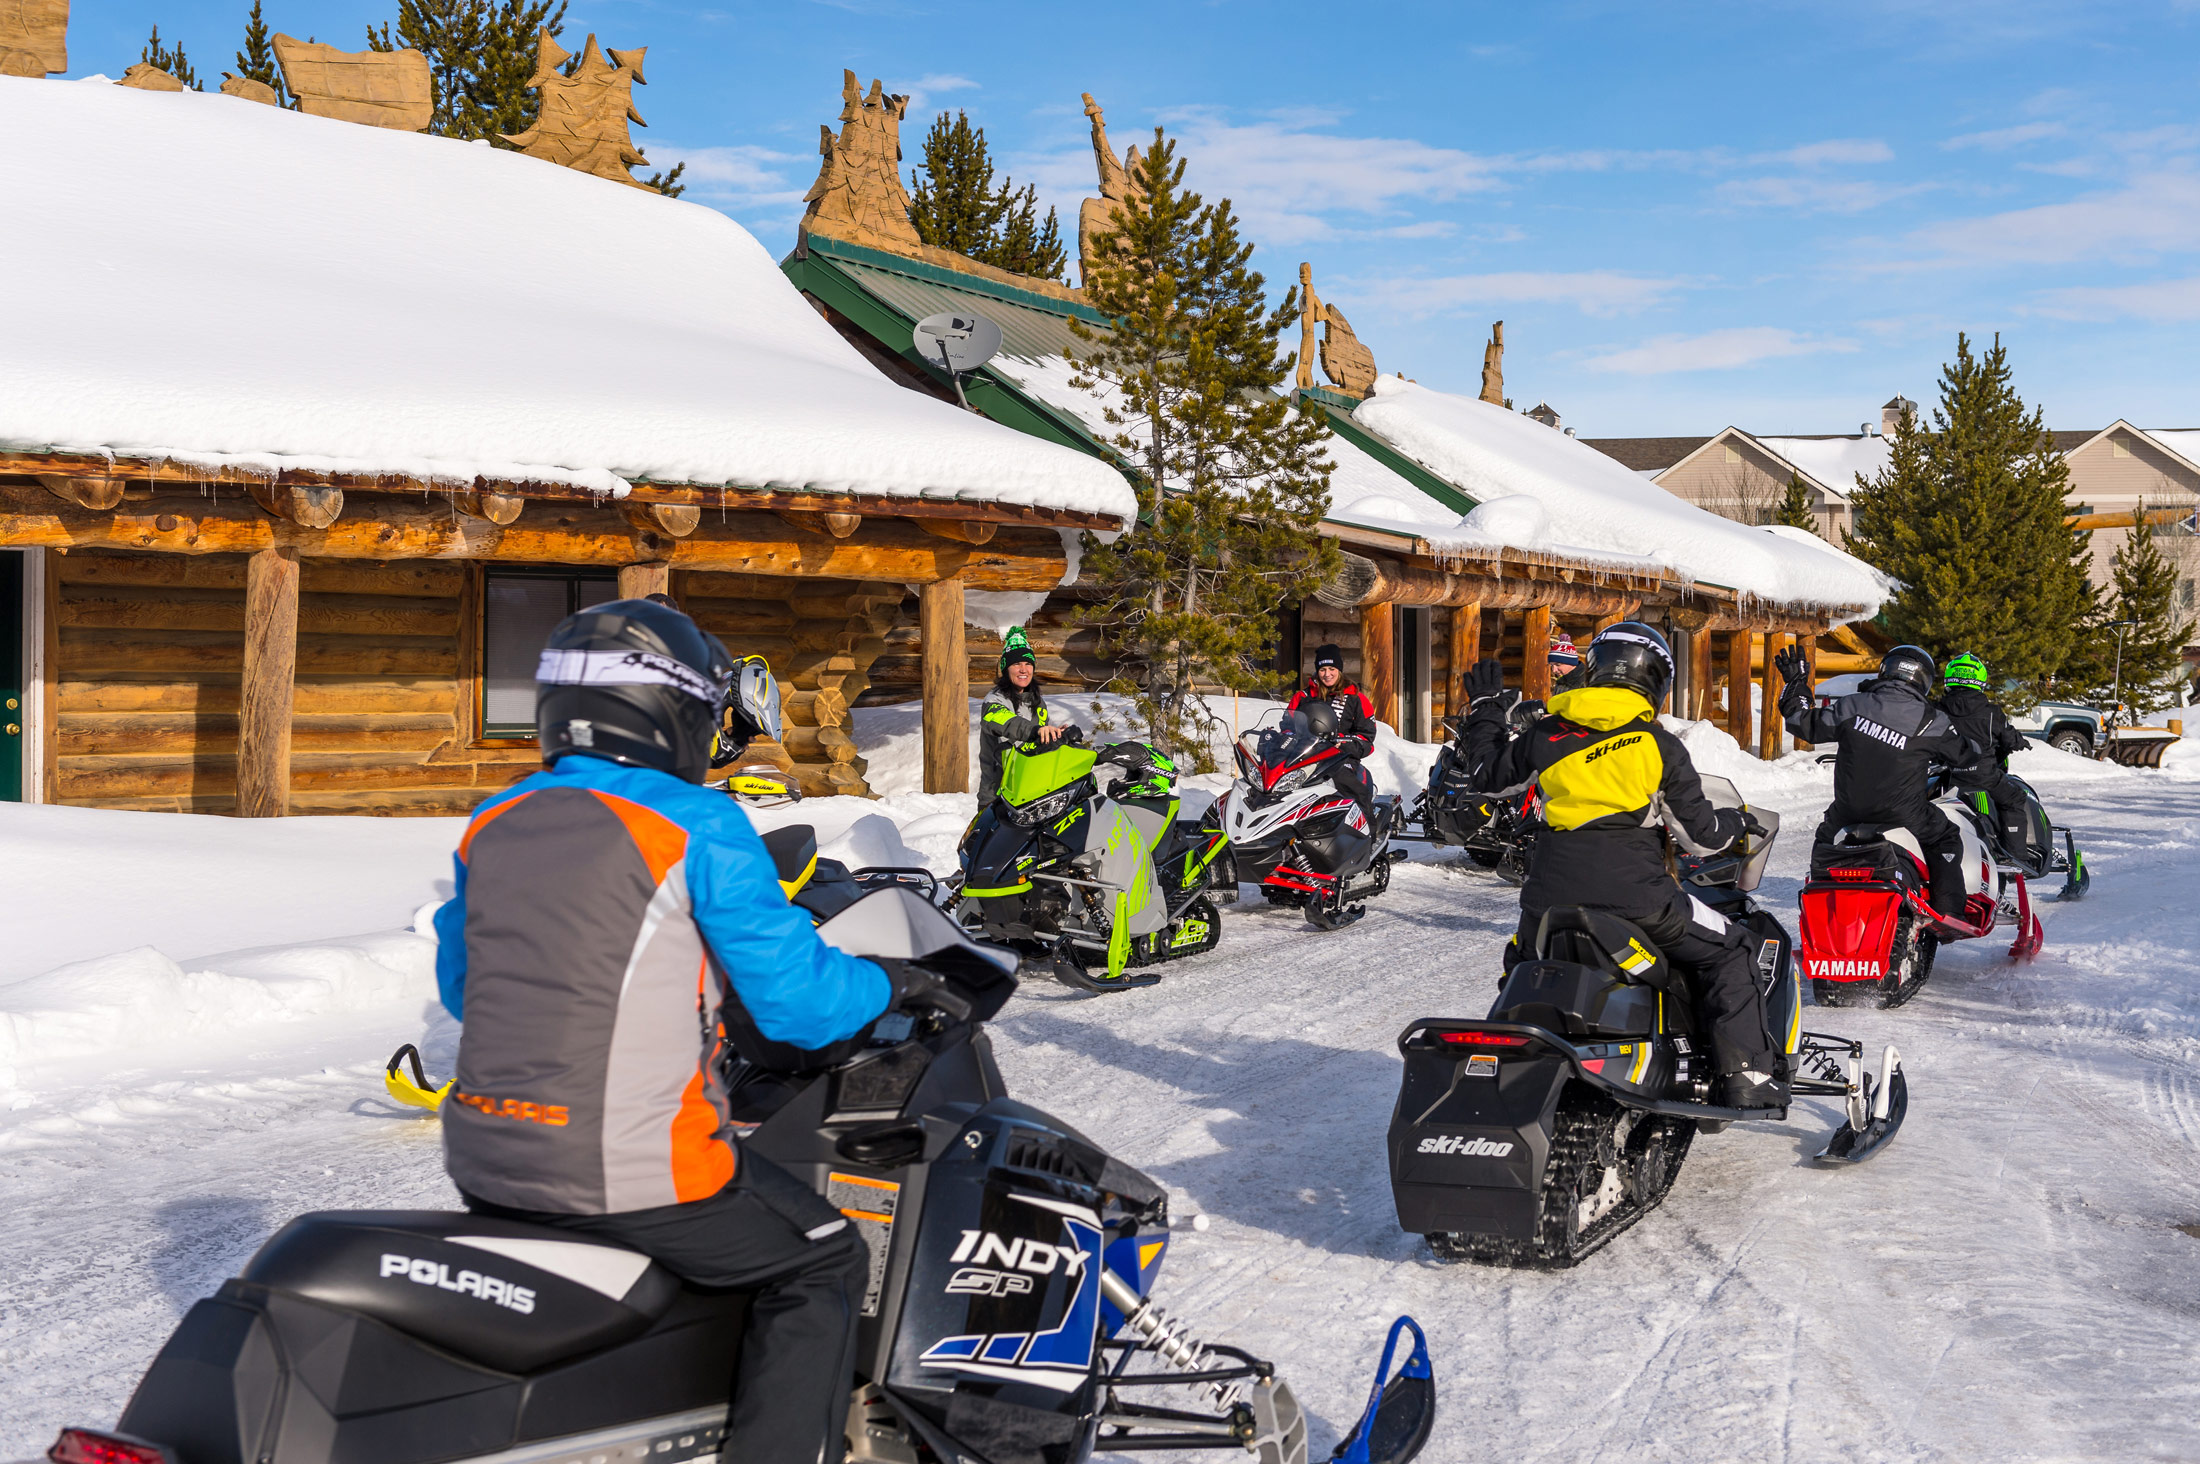 Be extra careful when open snowmobile trails lead to public locations.